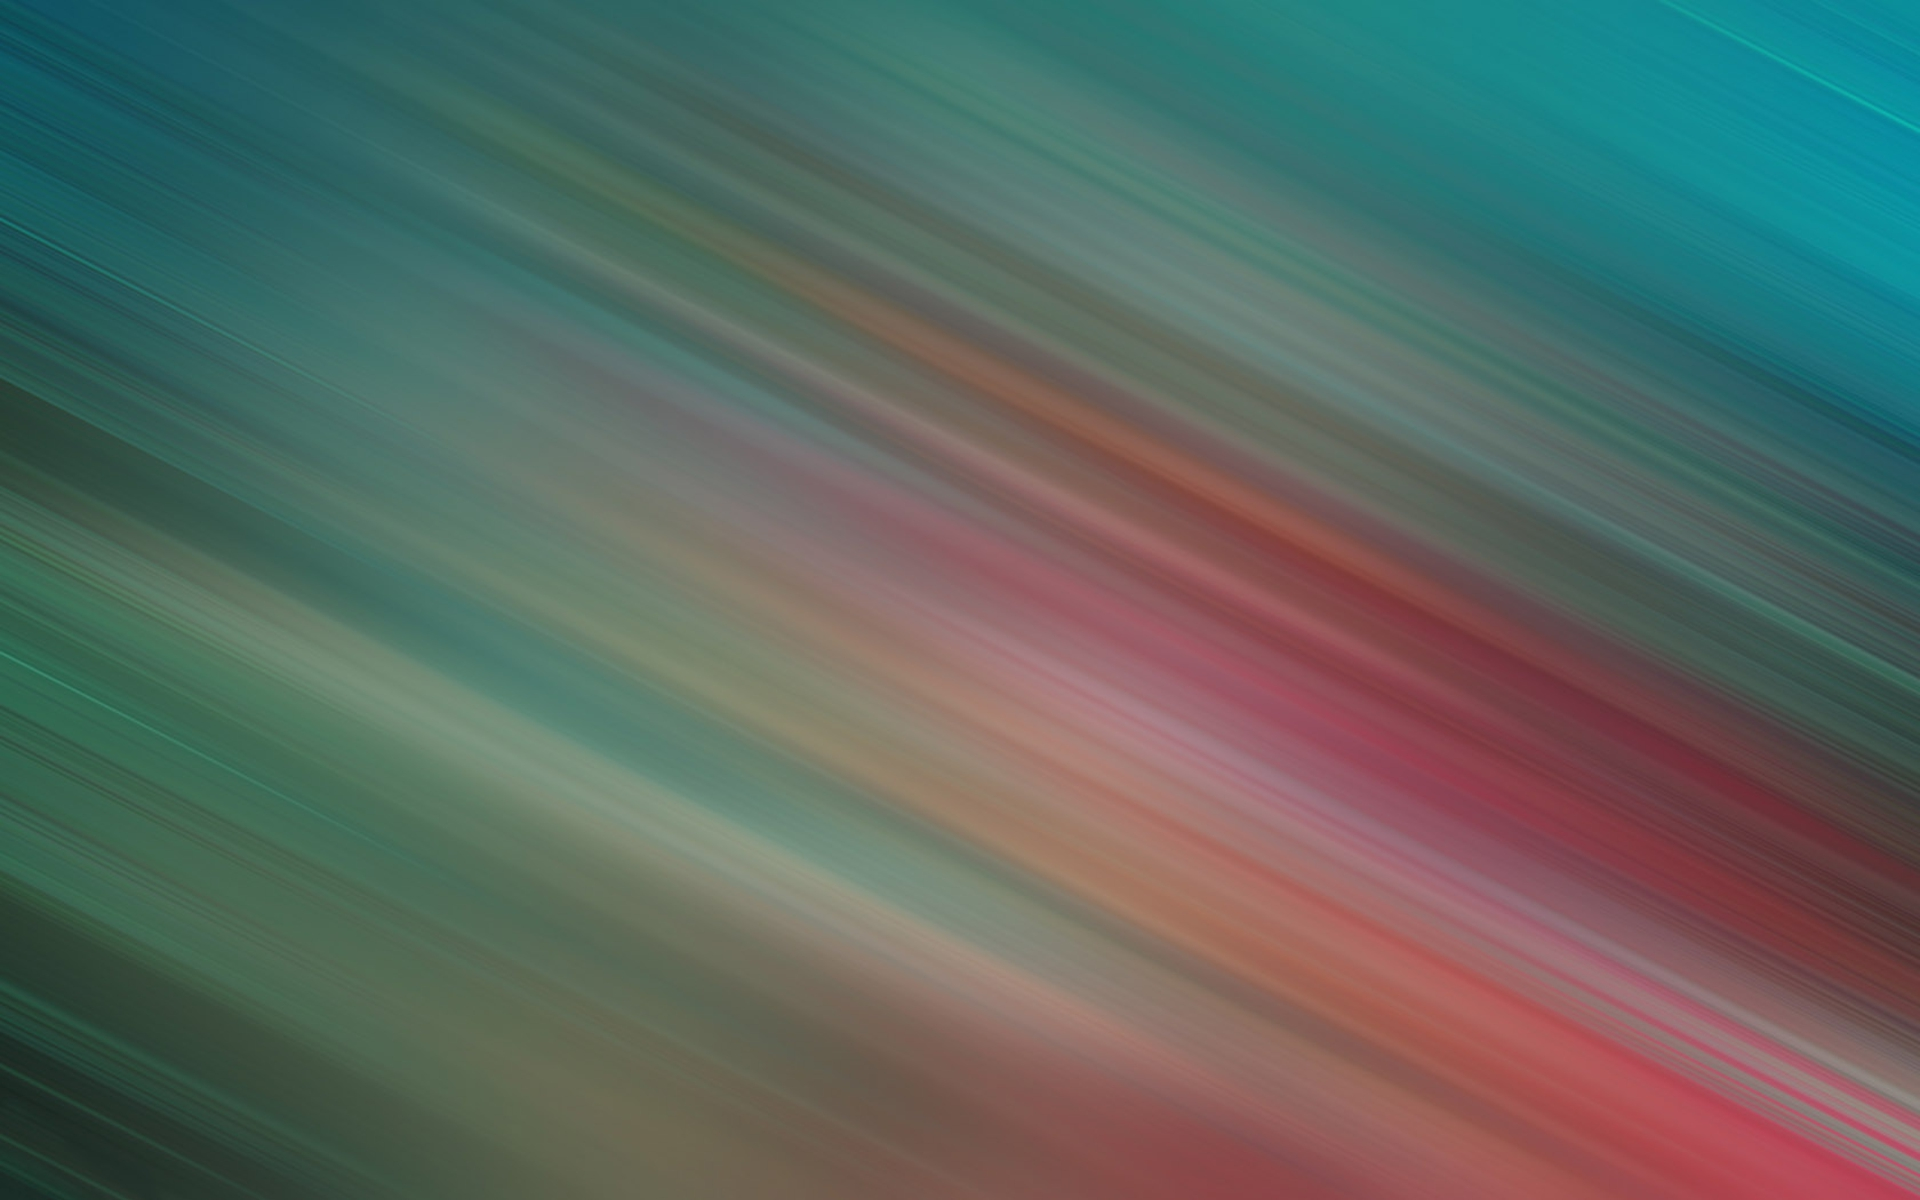 DOWNLOAD: Pattern Blue Red Motion Blur free background 2560 x 1600